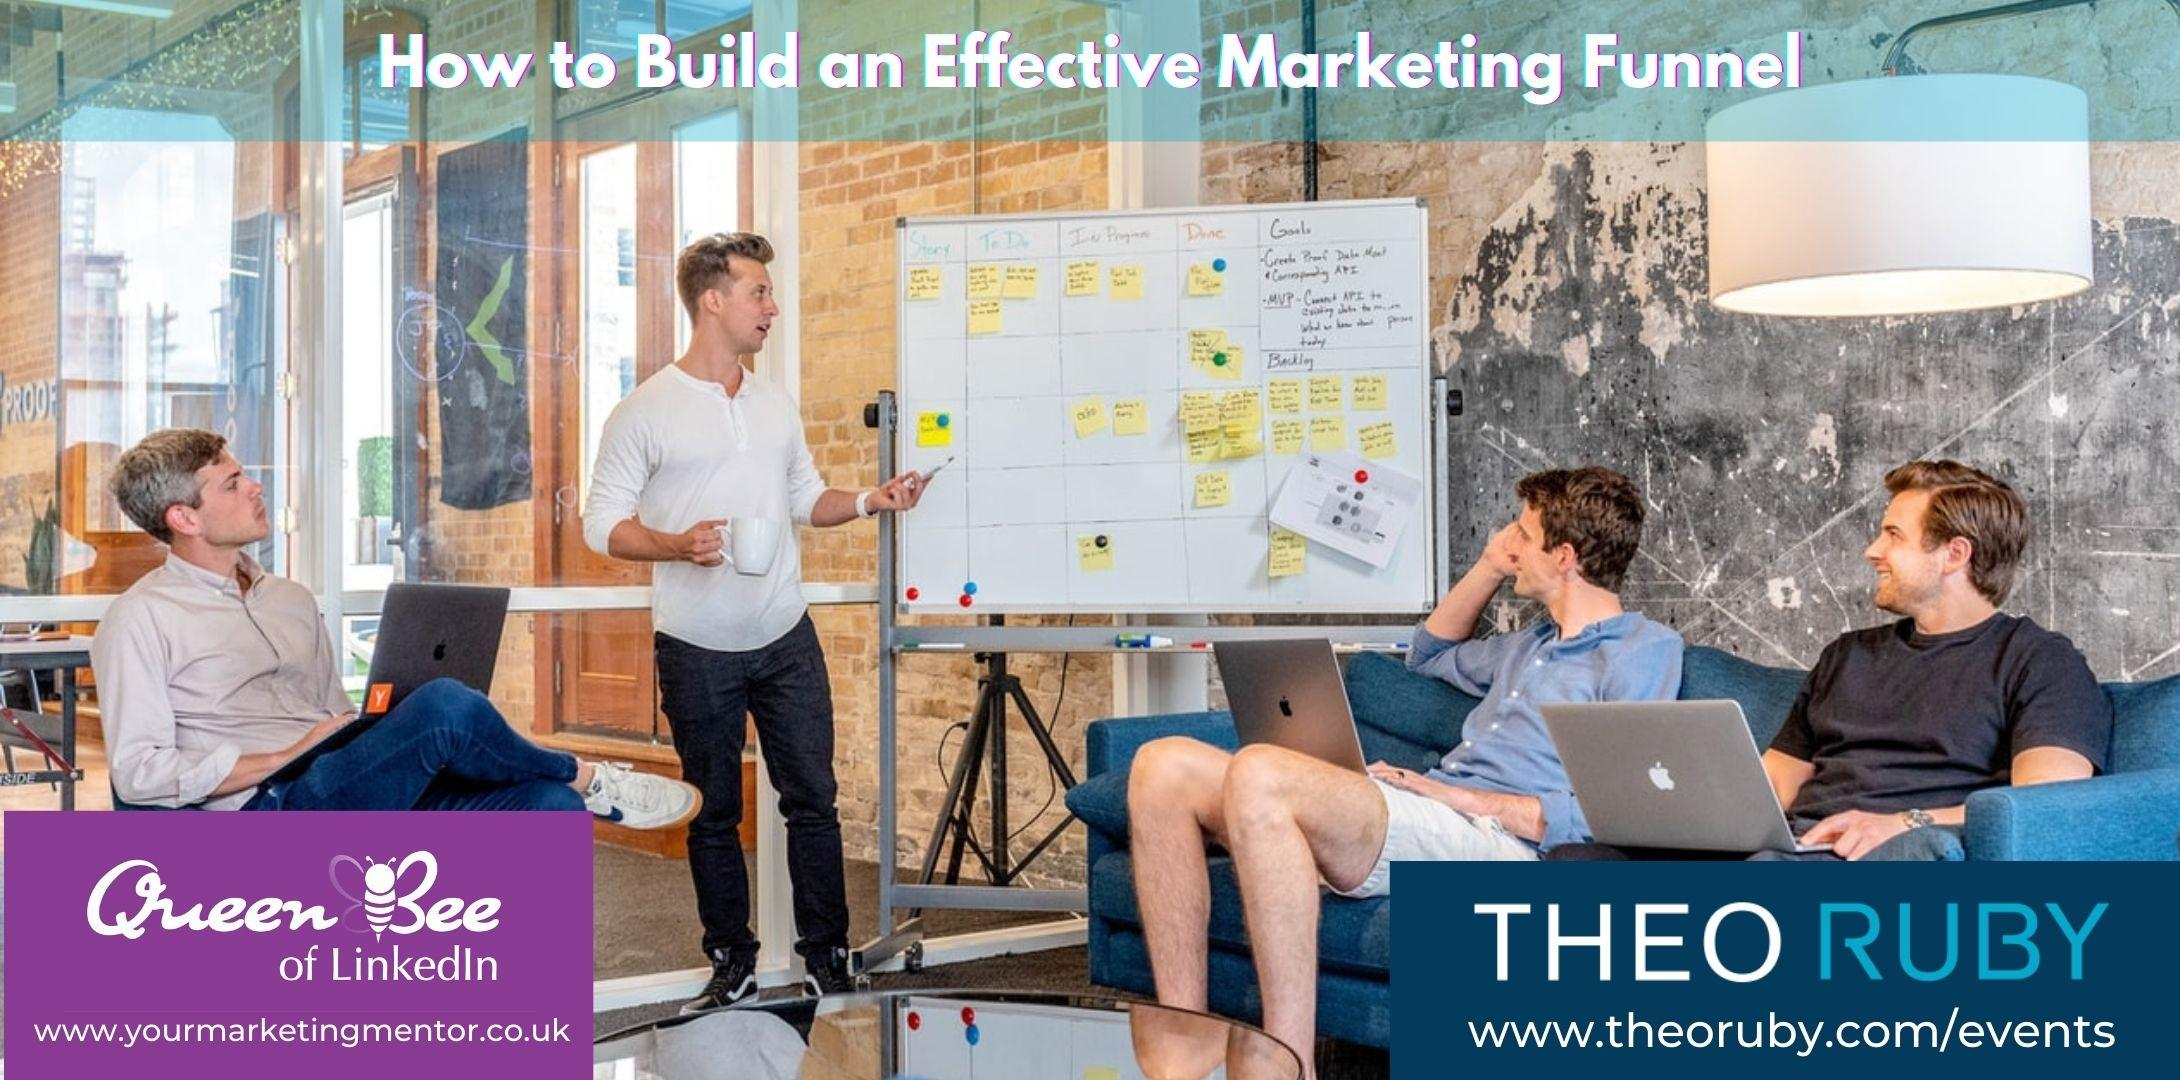 Build an Effective Marketing Funnel for your Business 1